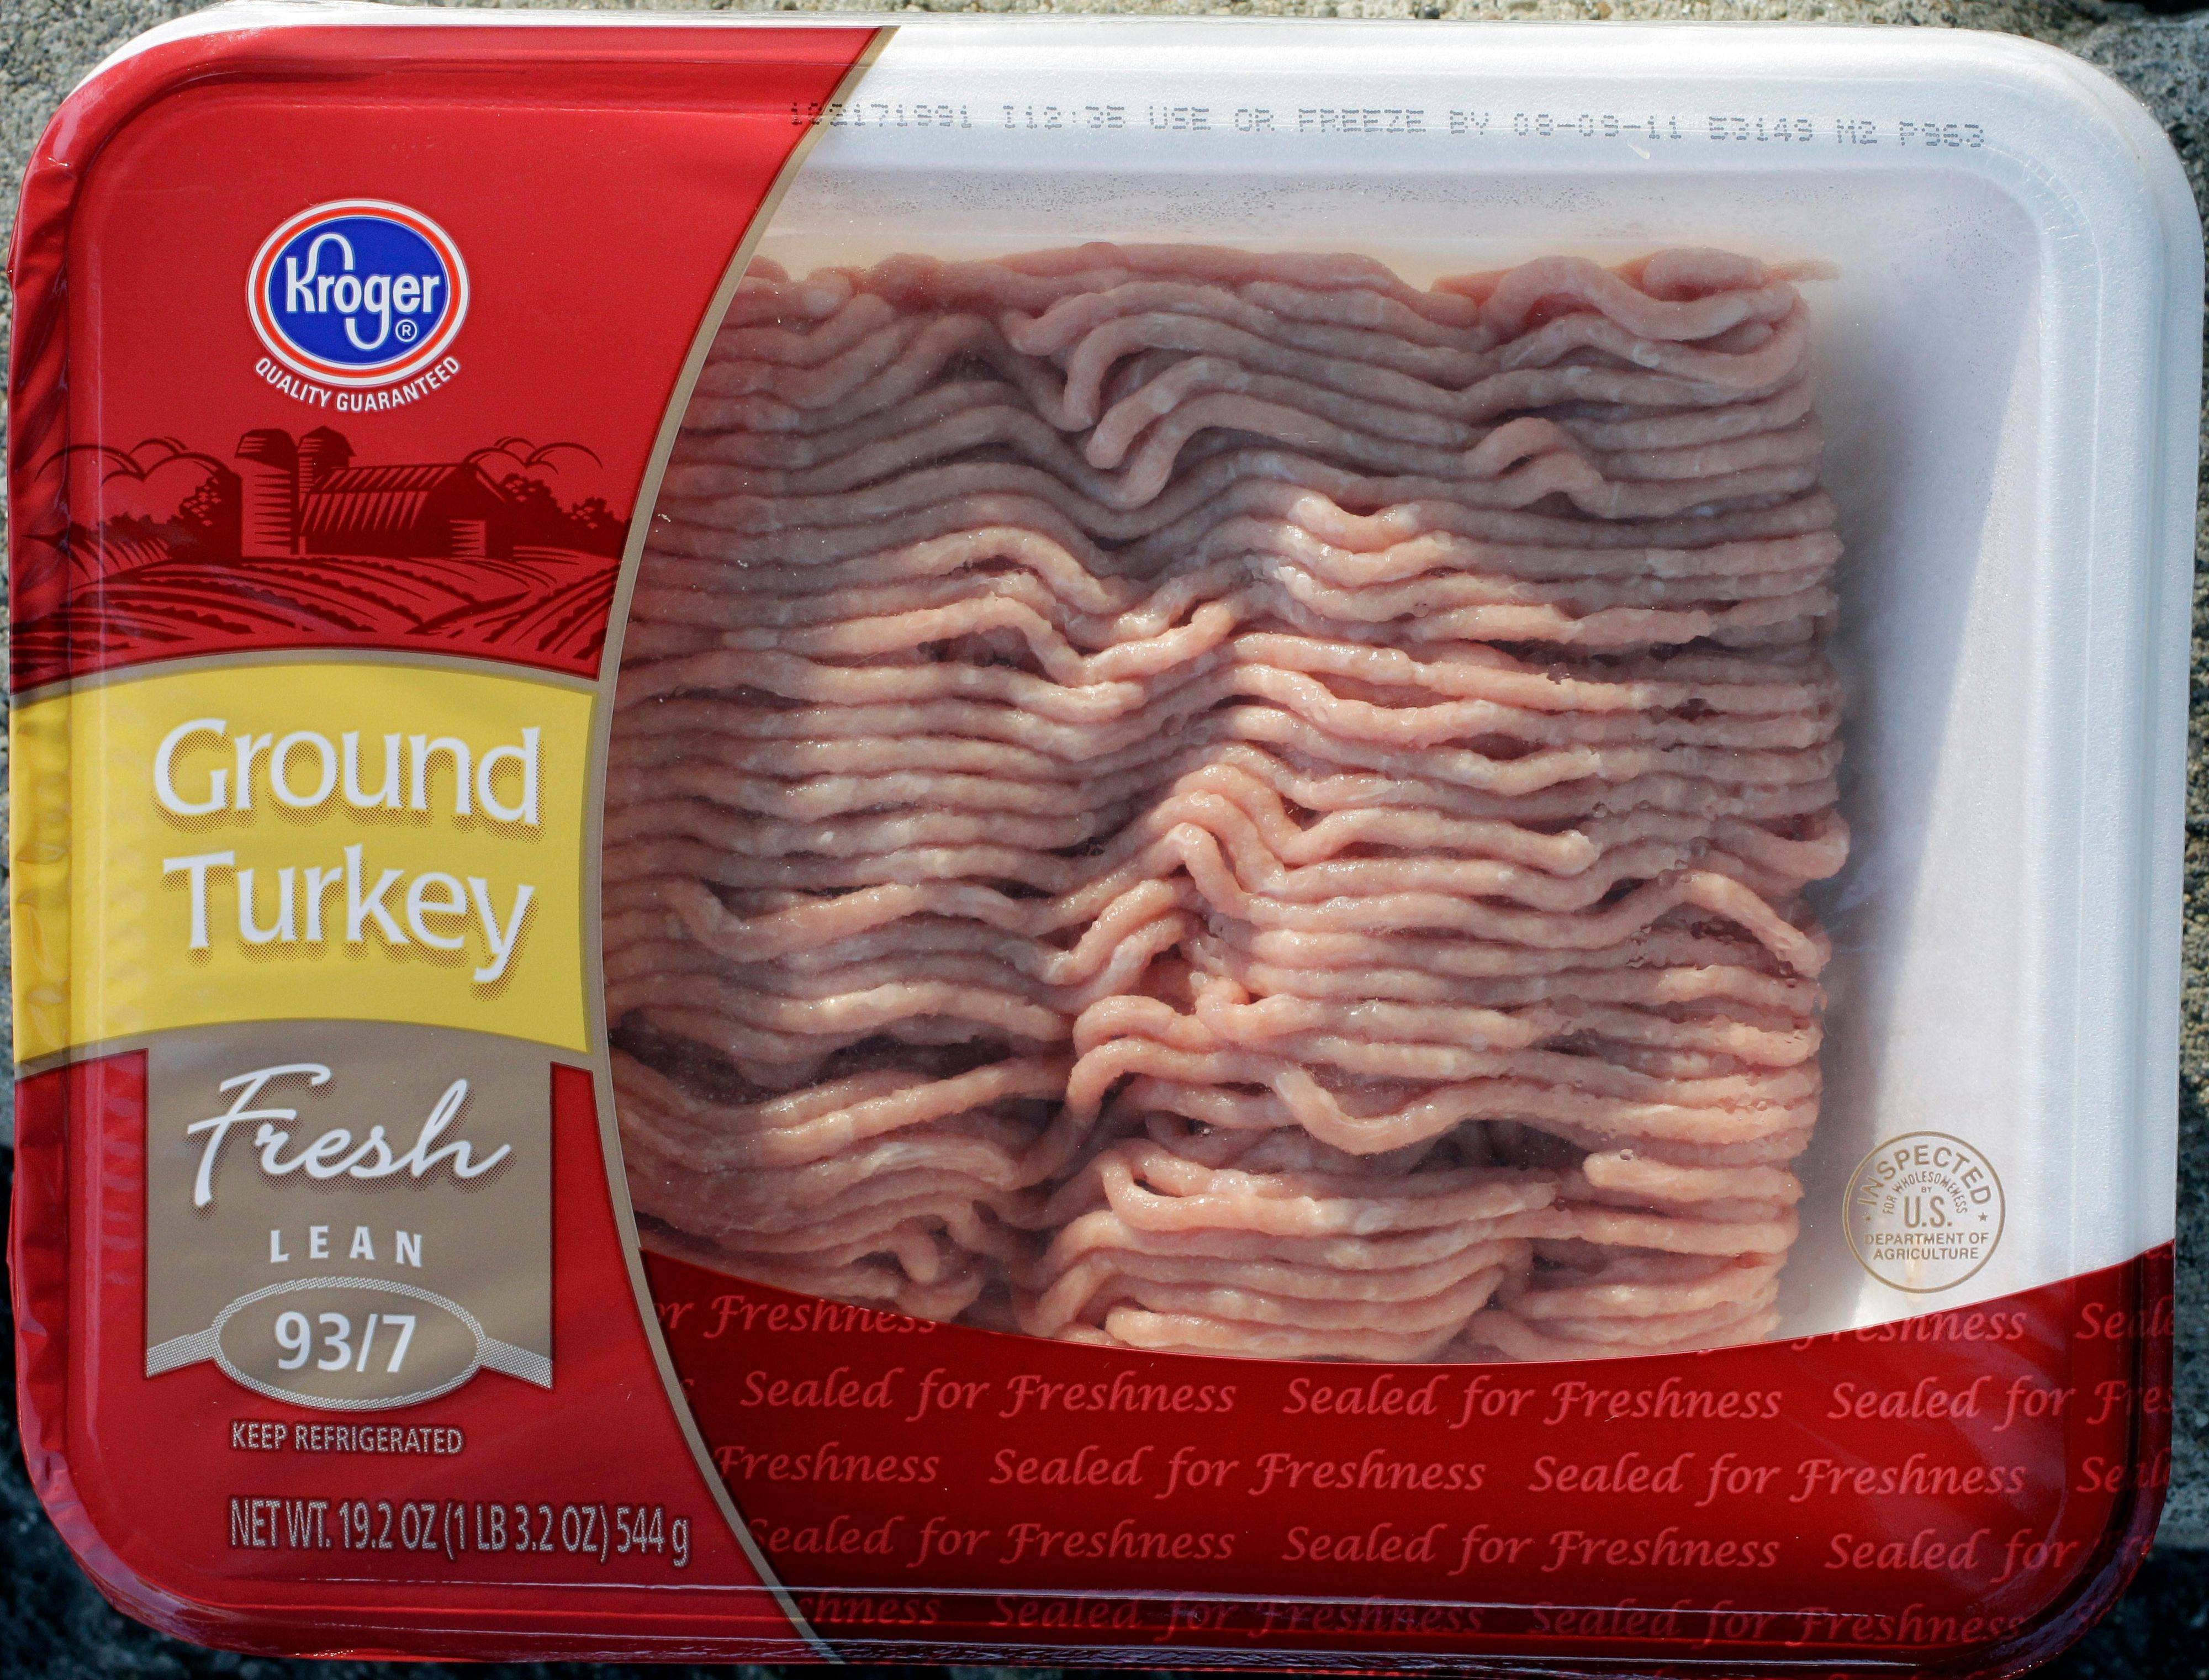 Cargill Inc. announced a second recall of ground turkey products Sunday after a test showed salmonella in a sample from the same Arkansas plant tied to a recall issued last month. The products were distributed nationwide under Kroger, Fresh HEB and Cargill's Honeysuckle White brands.